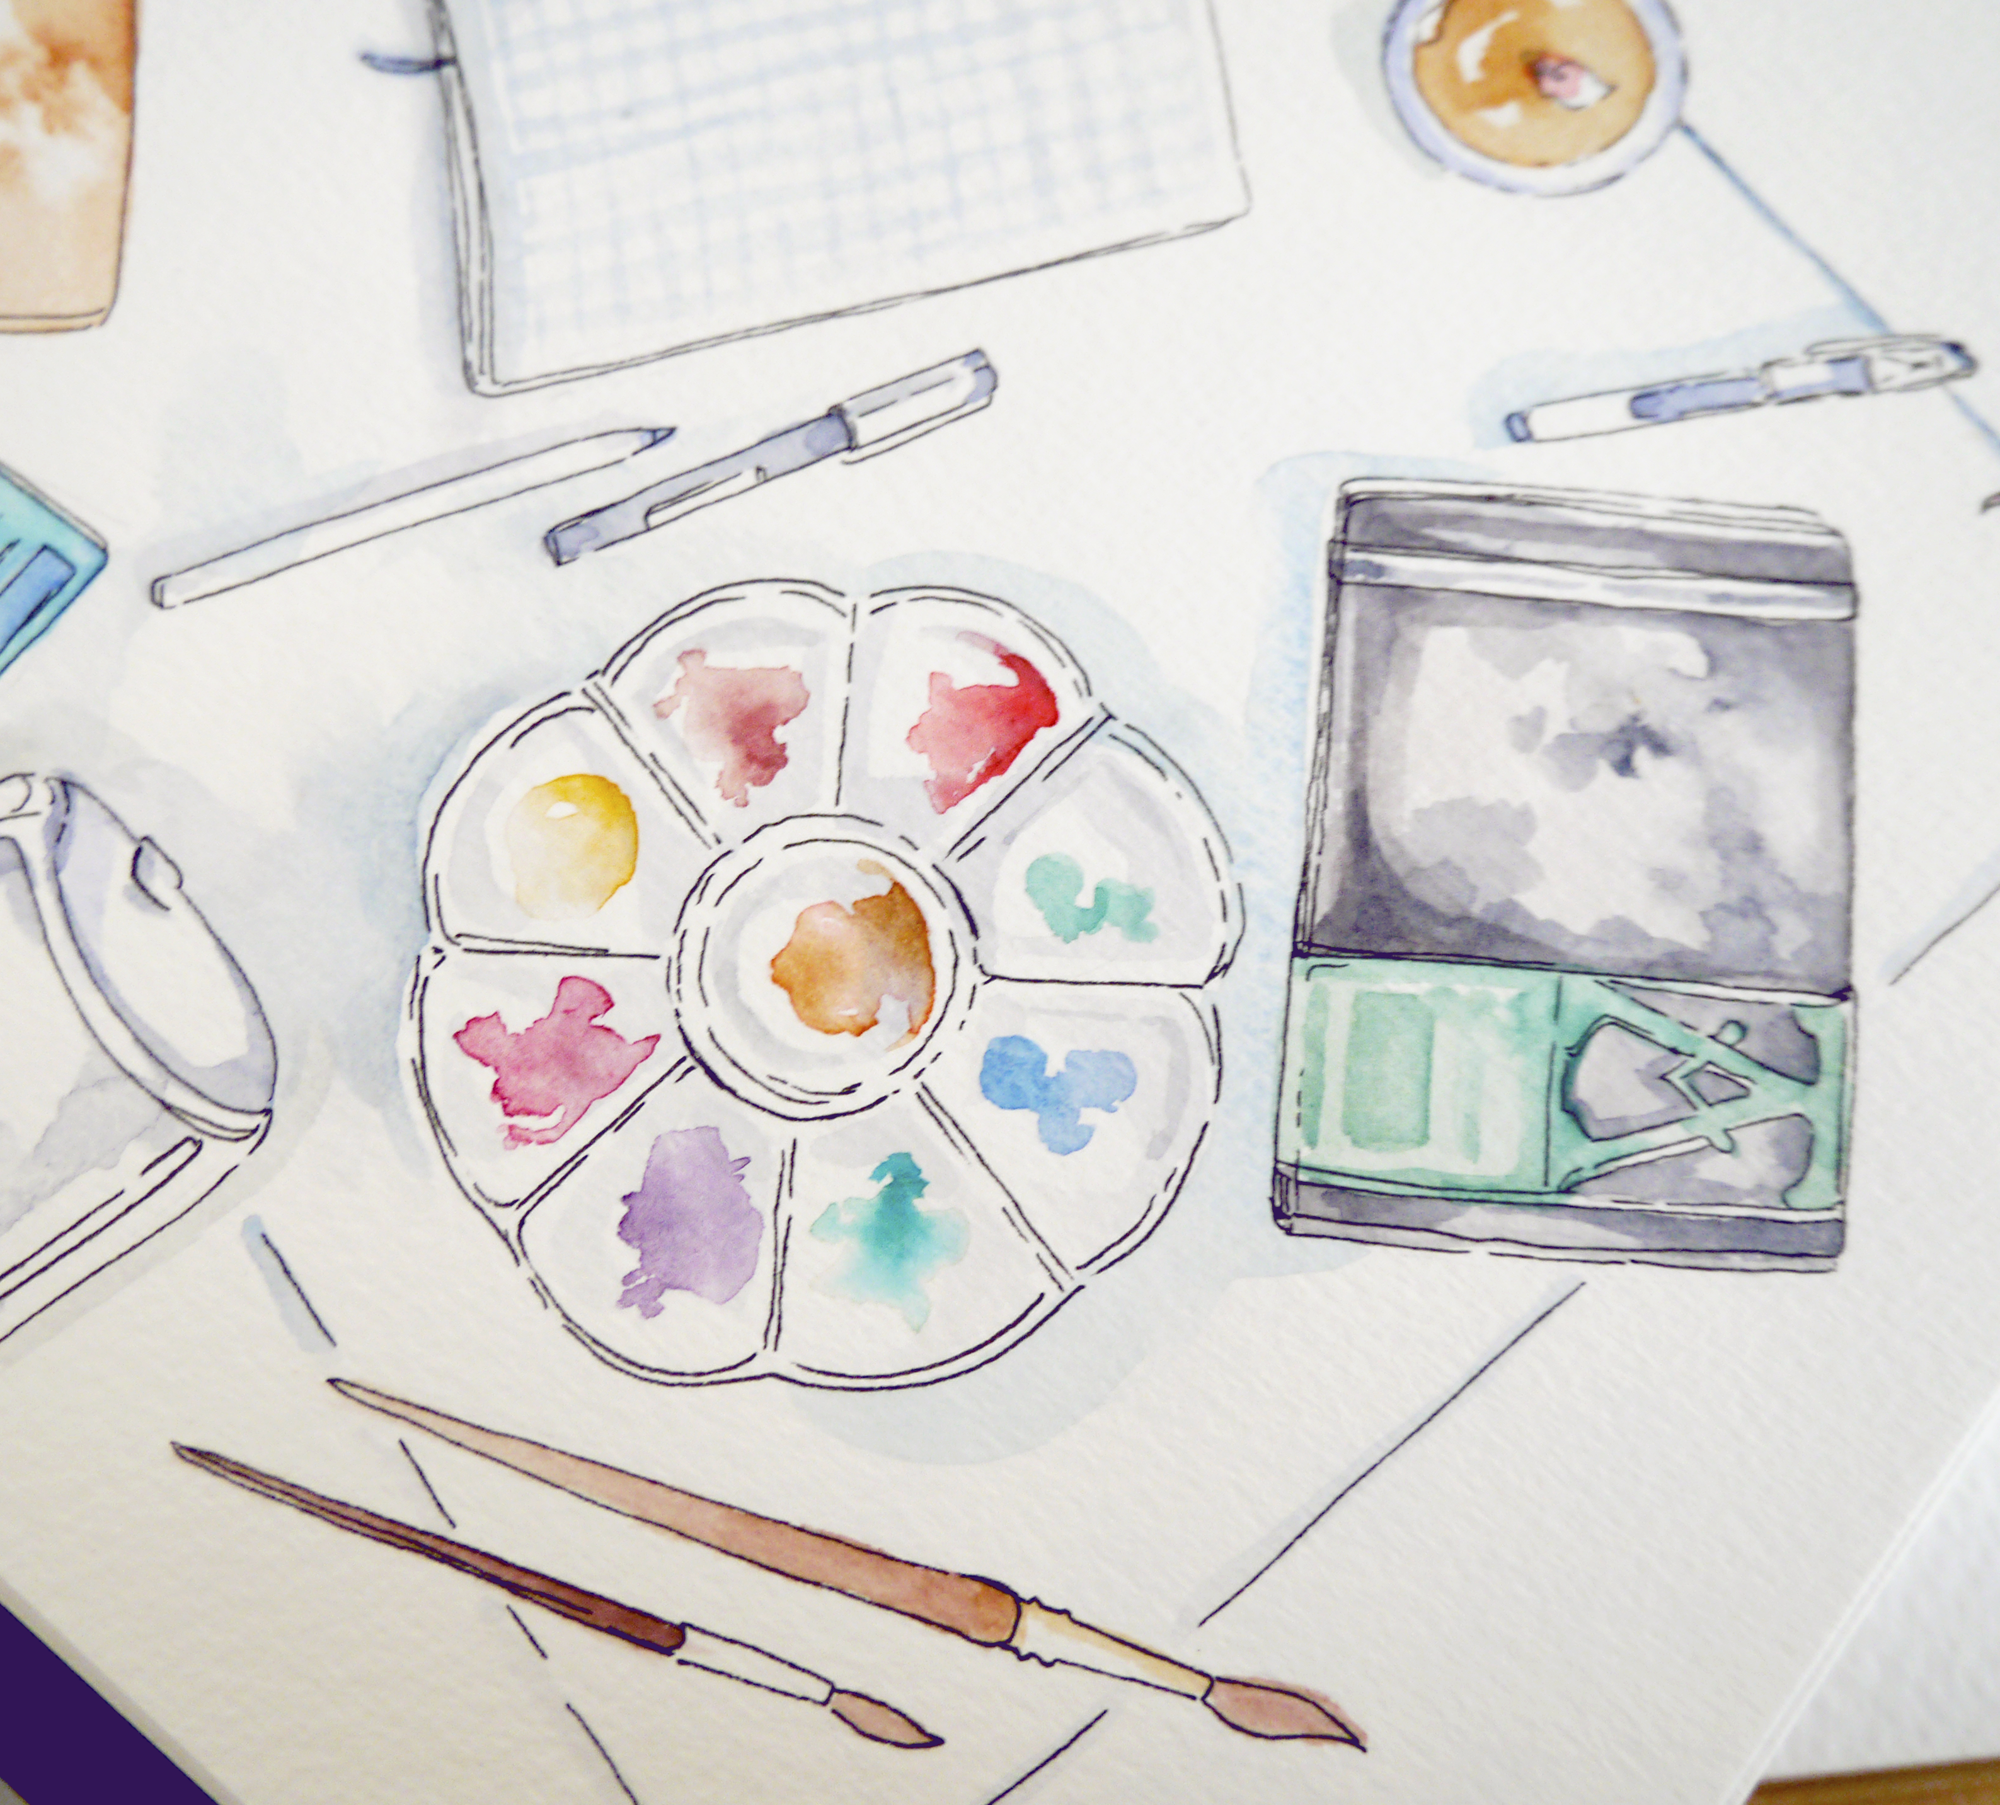 Watercolor illustration of my favorite art supplies - an illustrated artist gift guide for unique, creative gifts. My favorite art materials and wishlist compiled into an artist gift ideas guide - from beginner to professional, watercolor painter to sticker DIYer, I think I've got something for everyone. :) My art supply favorites have been tested and used over the last decade (time flies!) and I've got a long list of personal preferences that all my art materials need to fulfill, but I tried to be as broad and creative with this gift guide as I could!  From bullet journal supplies to luxurious art gifts, I hope you find something for your artist friends - or for your own wishlist!